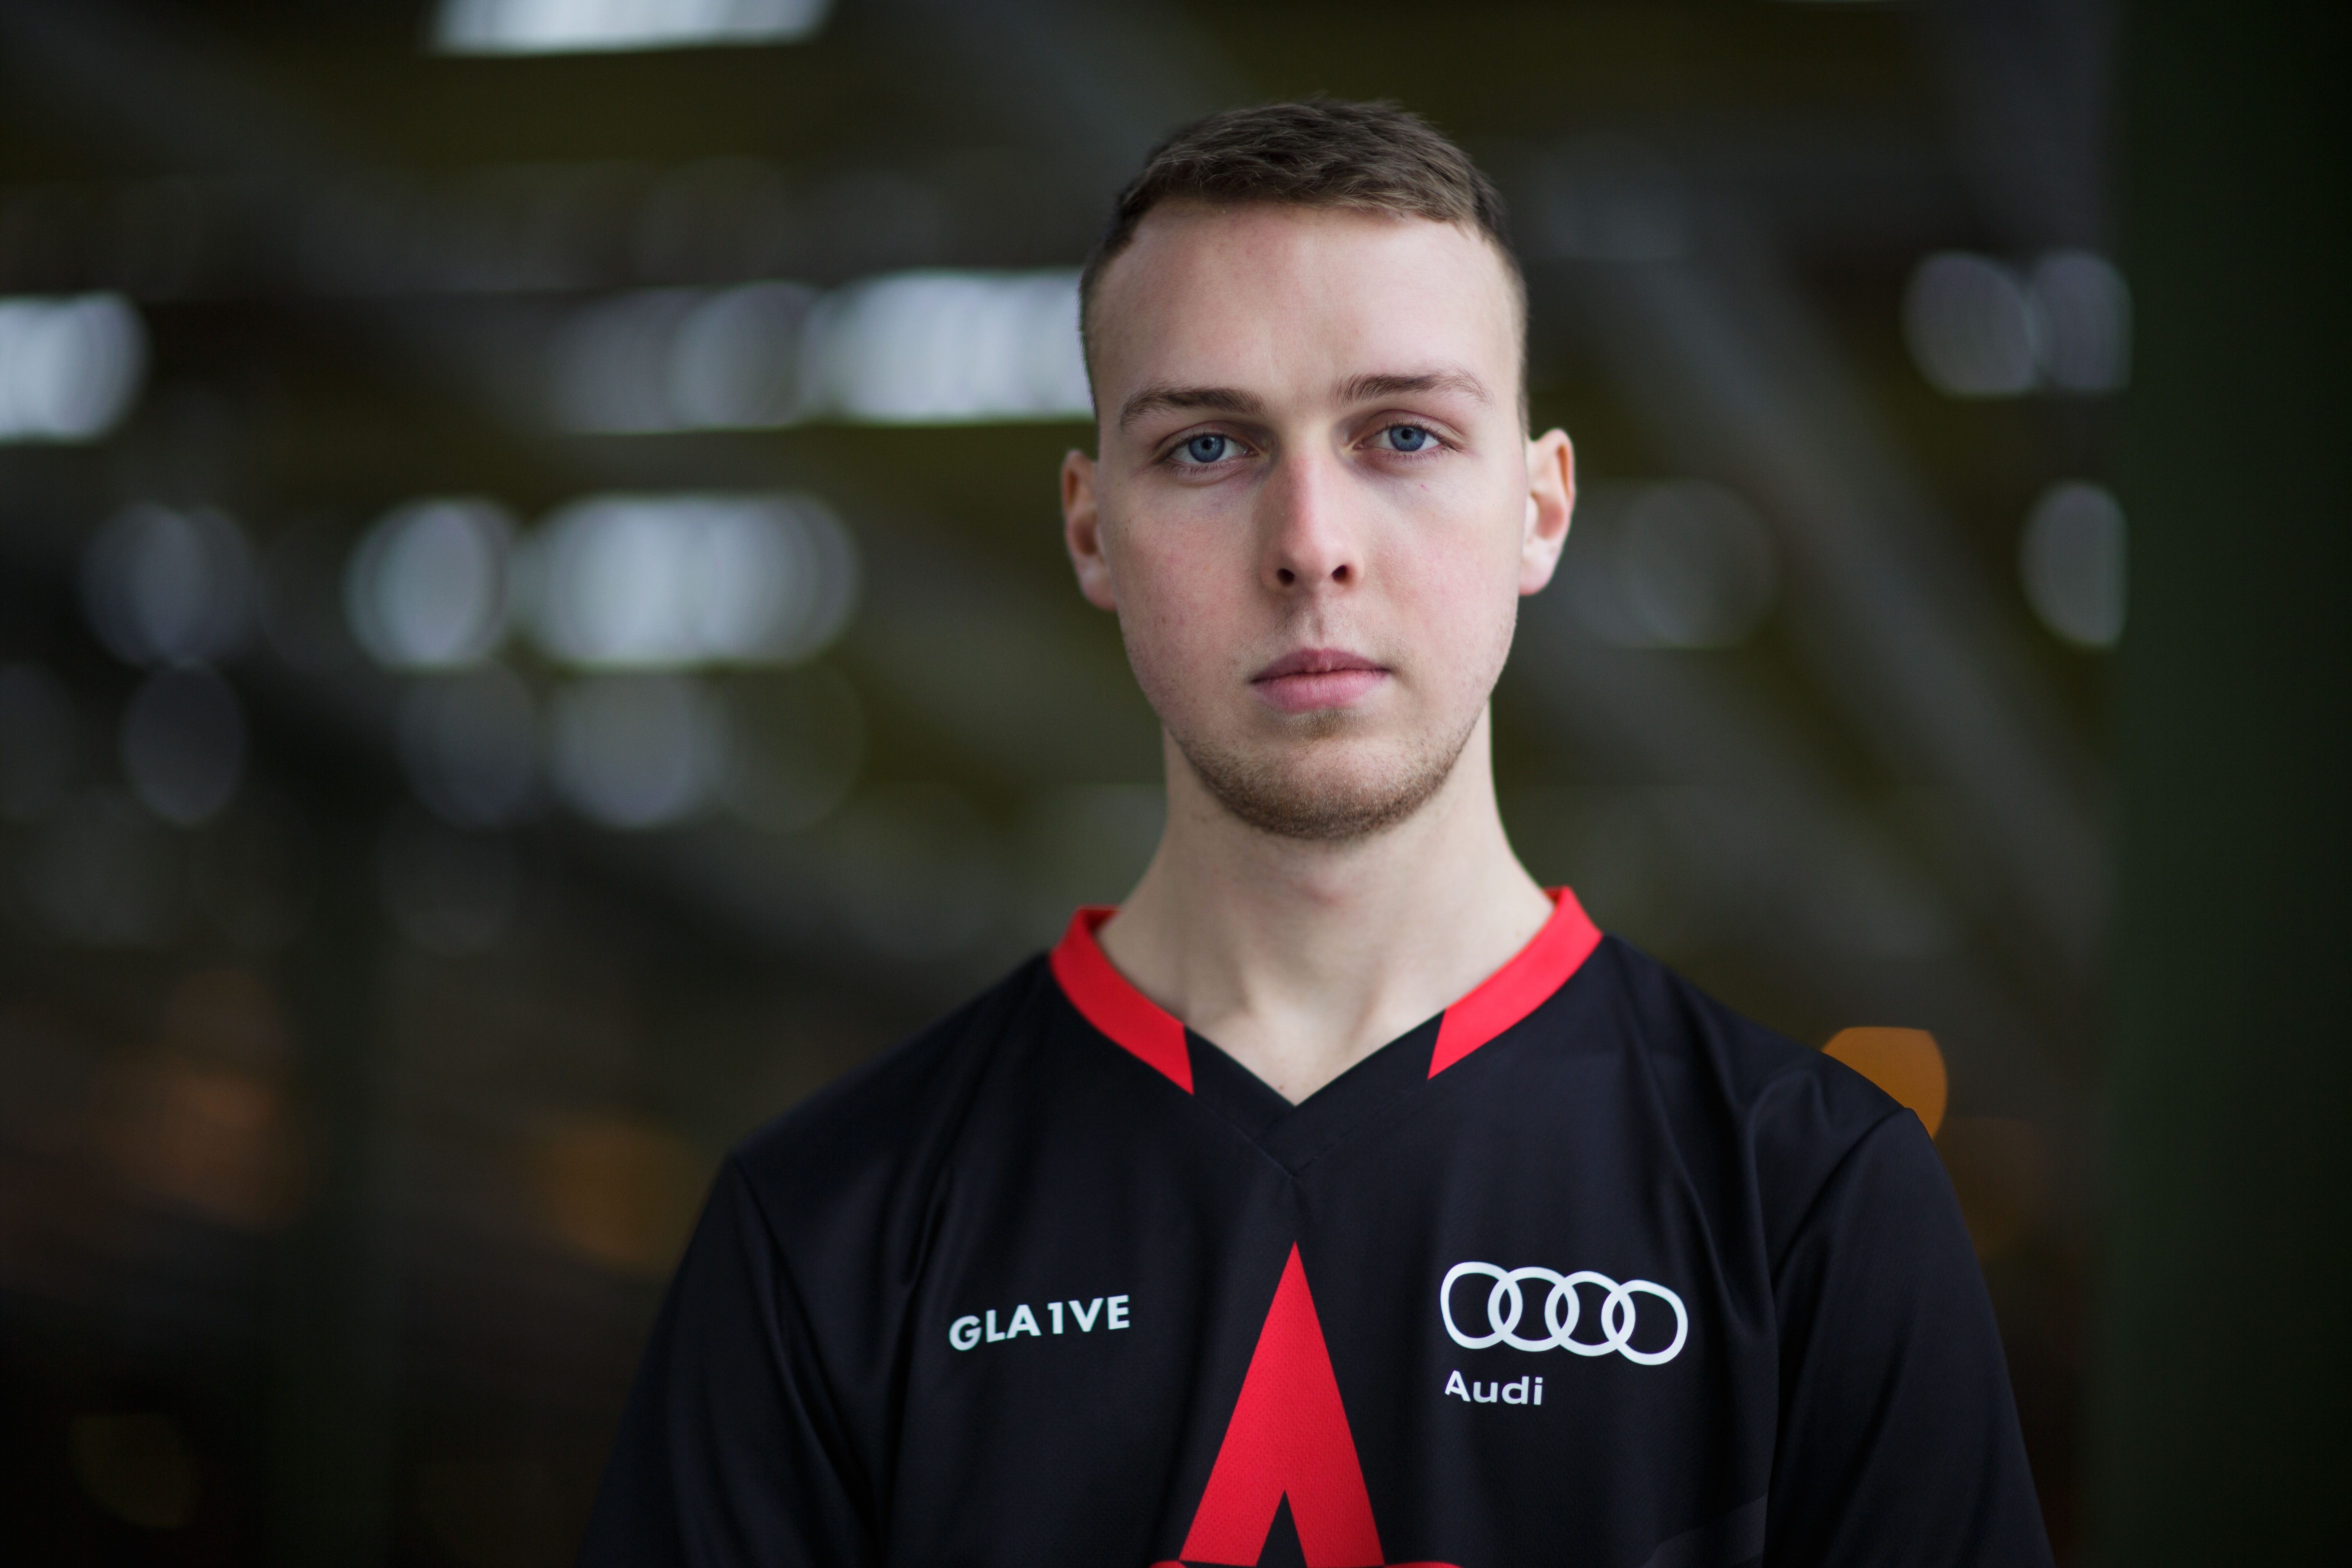 gla1ve CS:GO